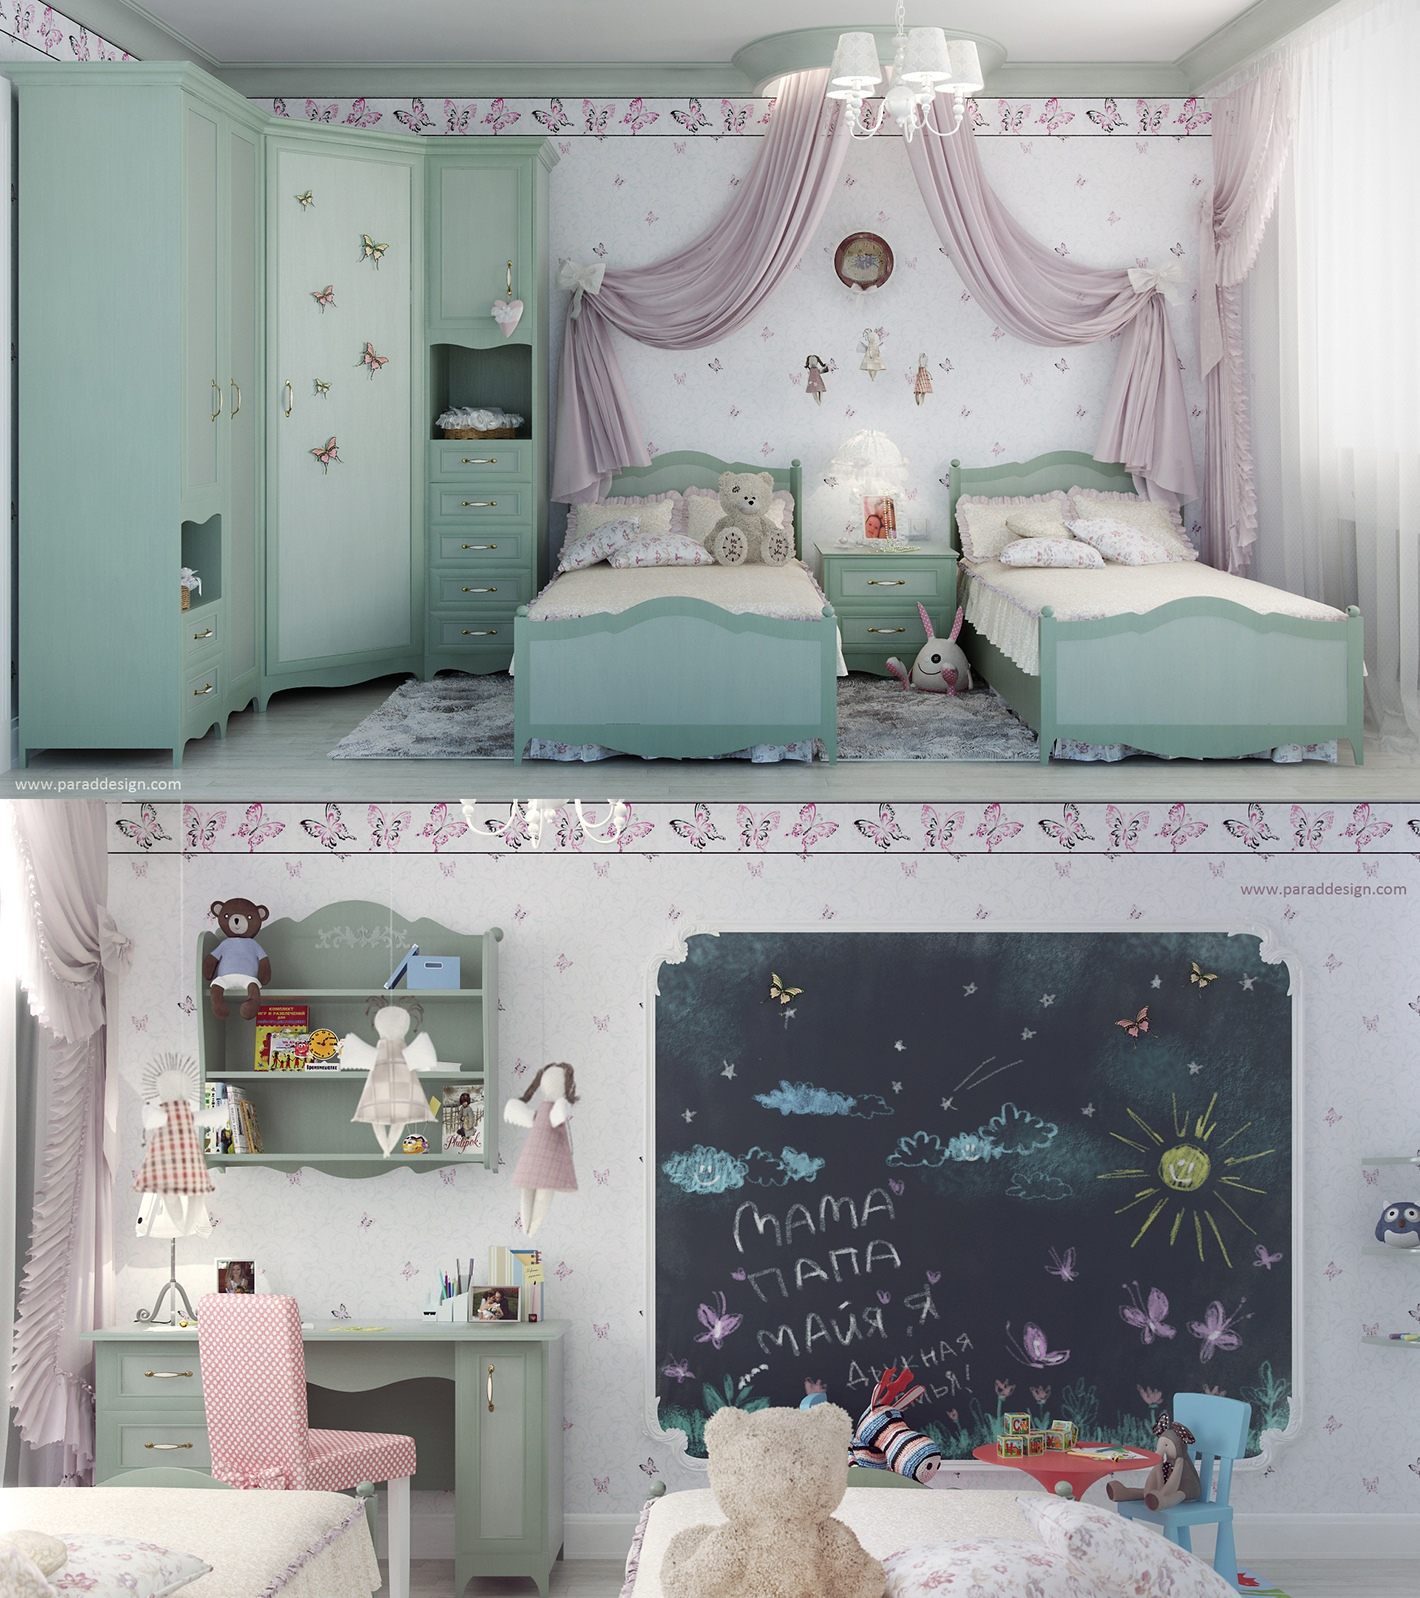 2 little girls bedroom 7 interior design ideas Little girls bedroom decorating ideas